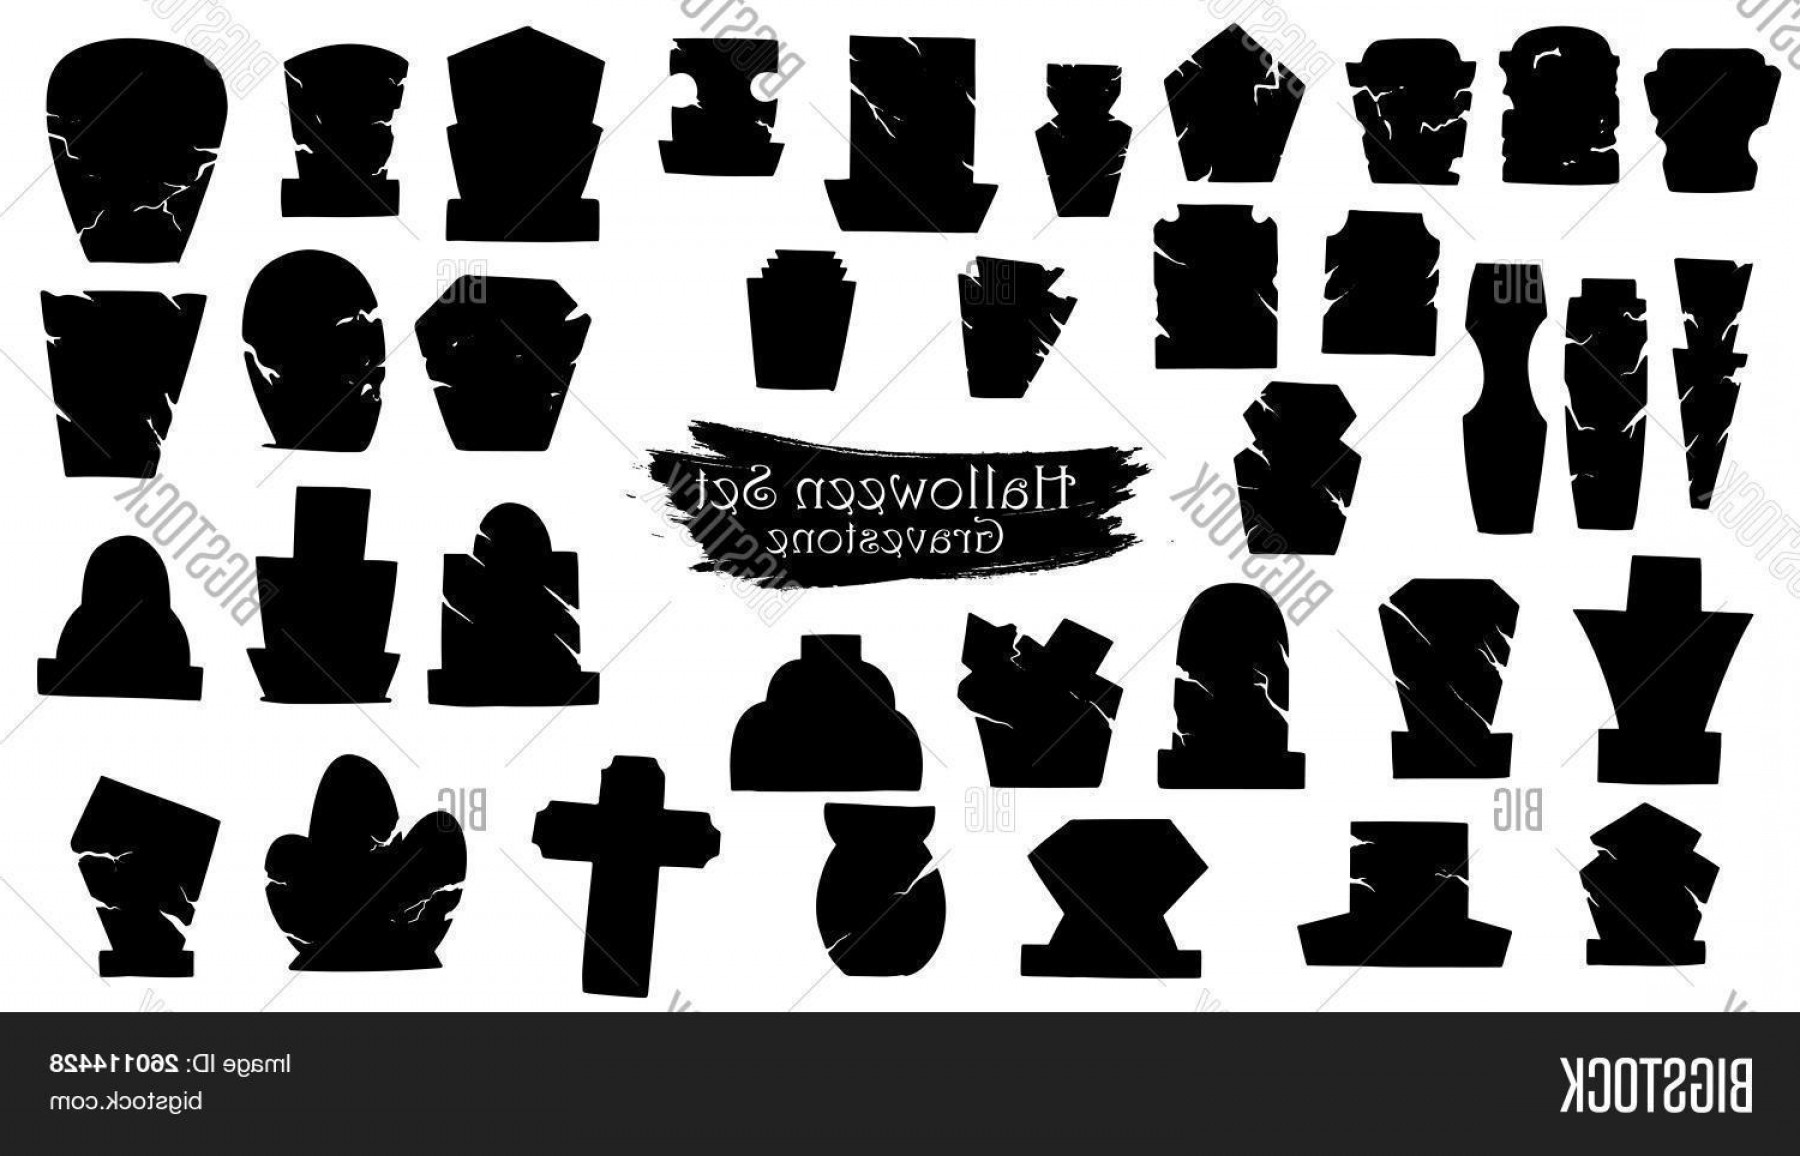 Gravestone Black And Whit Vector JPEG: Stock Vector Spooky Gravestone Cemetery Silhouette Collection Of Halloween Vector Isolated On White Background S